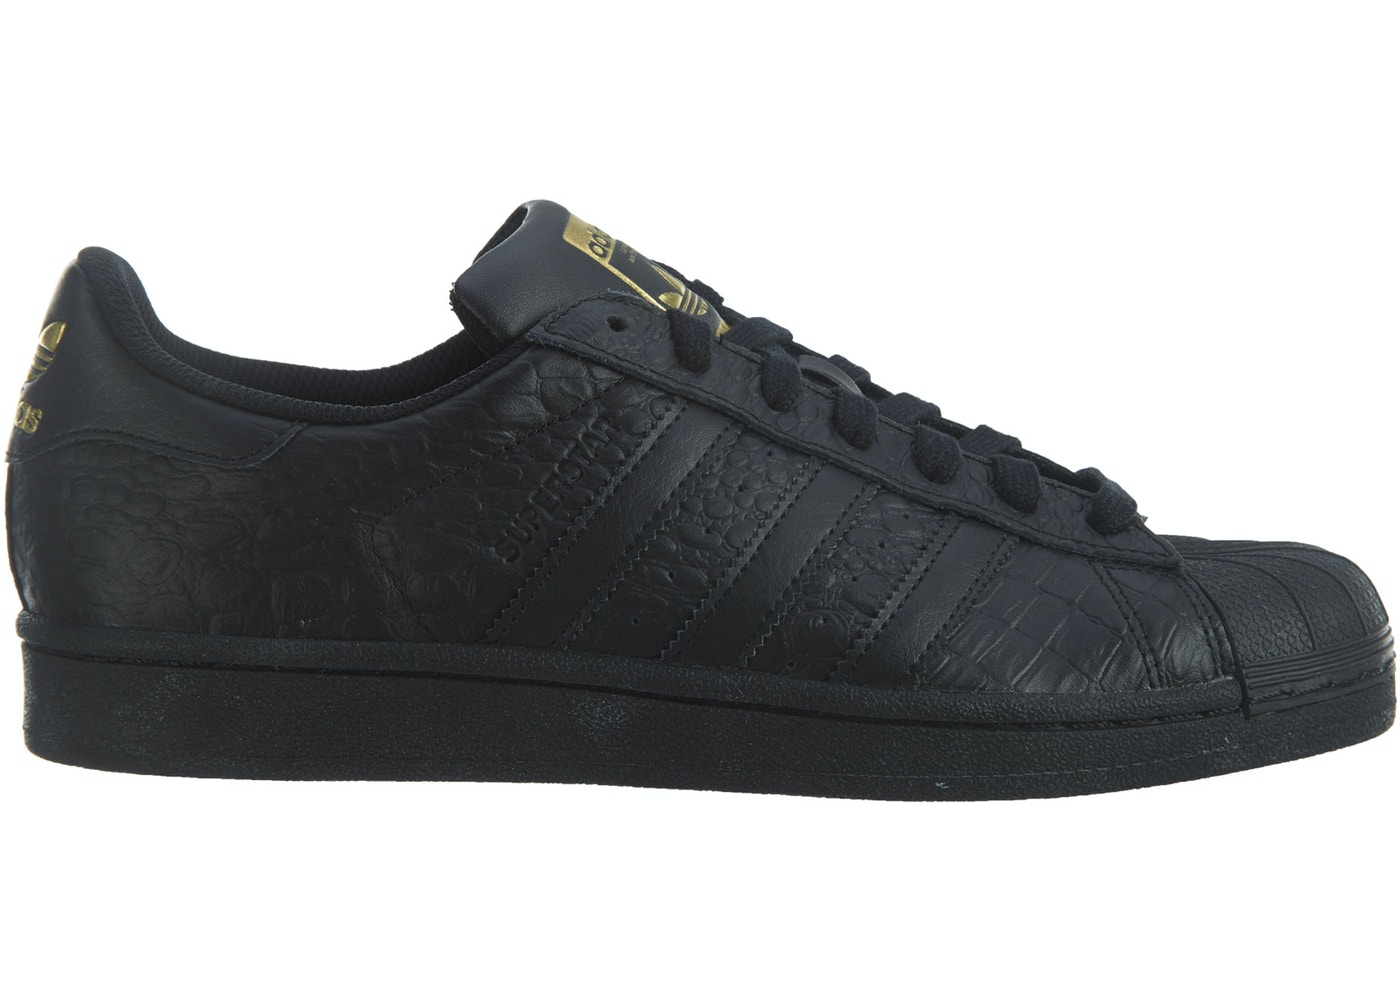 adidas superstar metallic black and gold